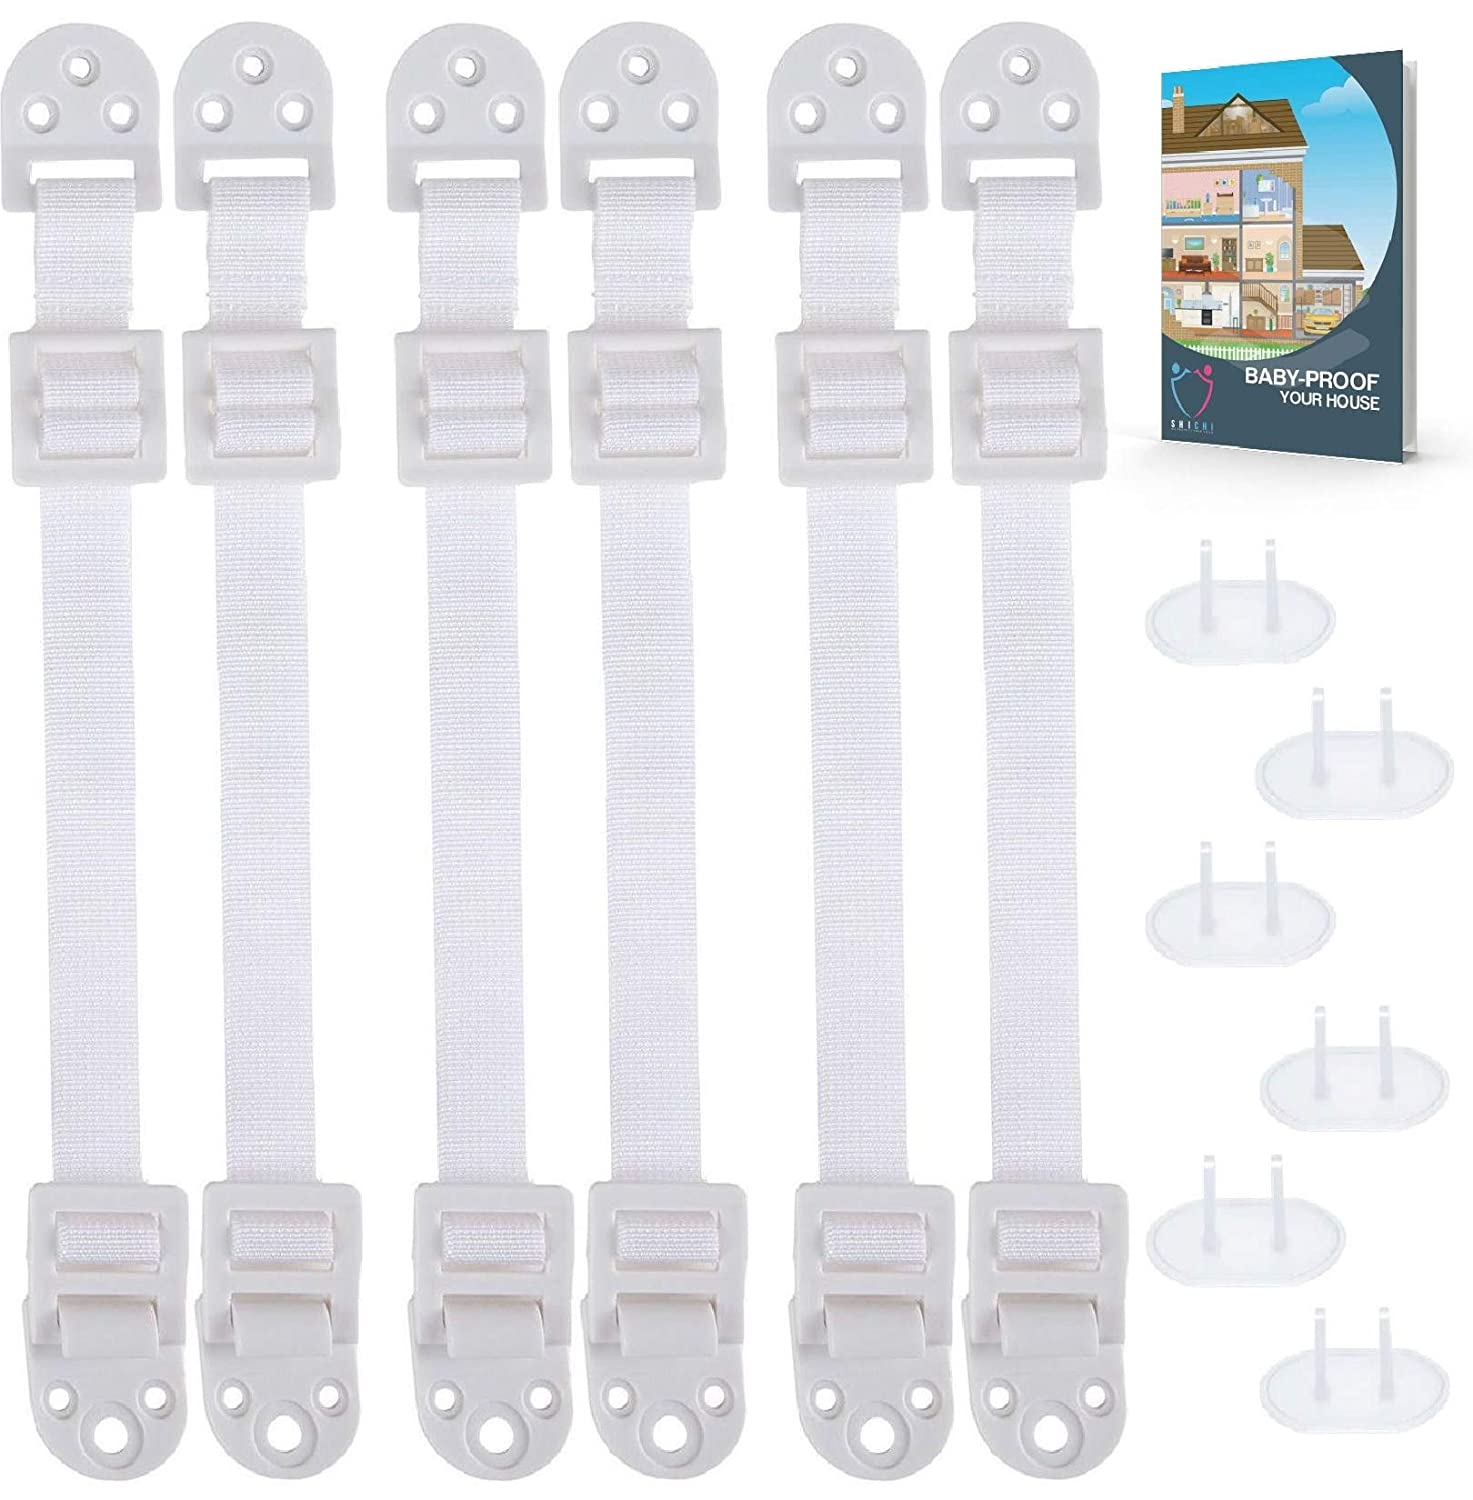 Furniture Anchors for Baby Proofing (6 PACK+6 OUTLET COVERS+EBOOK) TV Straps Safety Anti-Tip Kit, Furniture Mount Baby Proof, Earthquake Straps for Bookshelf, Dresser Secure to Wall,Child Anchor Strap